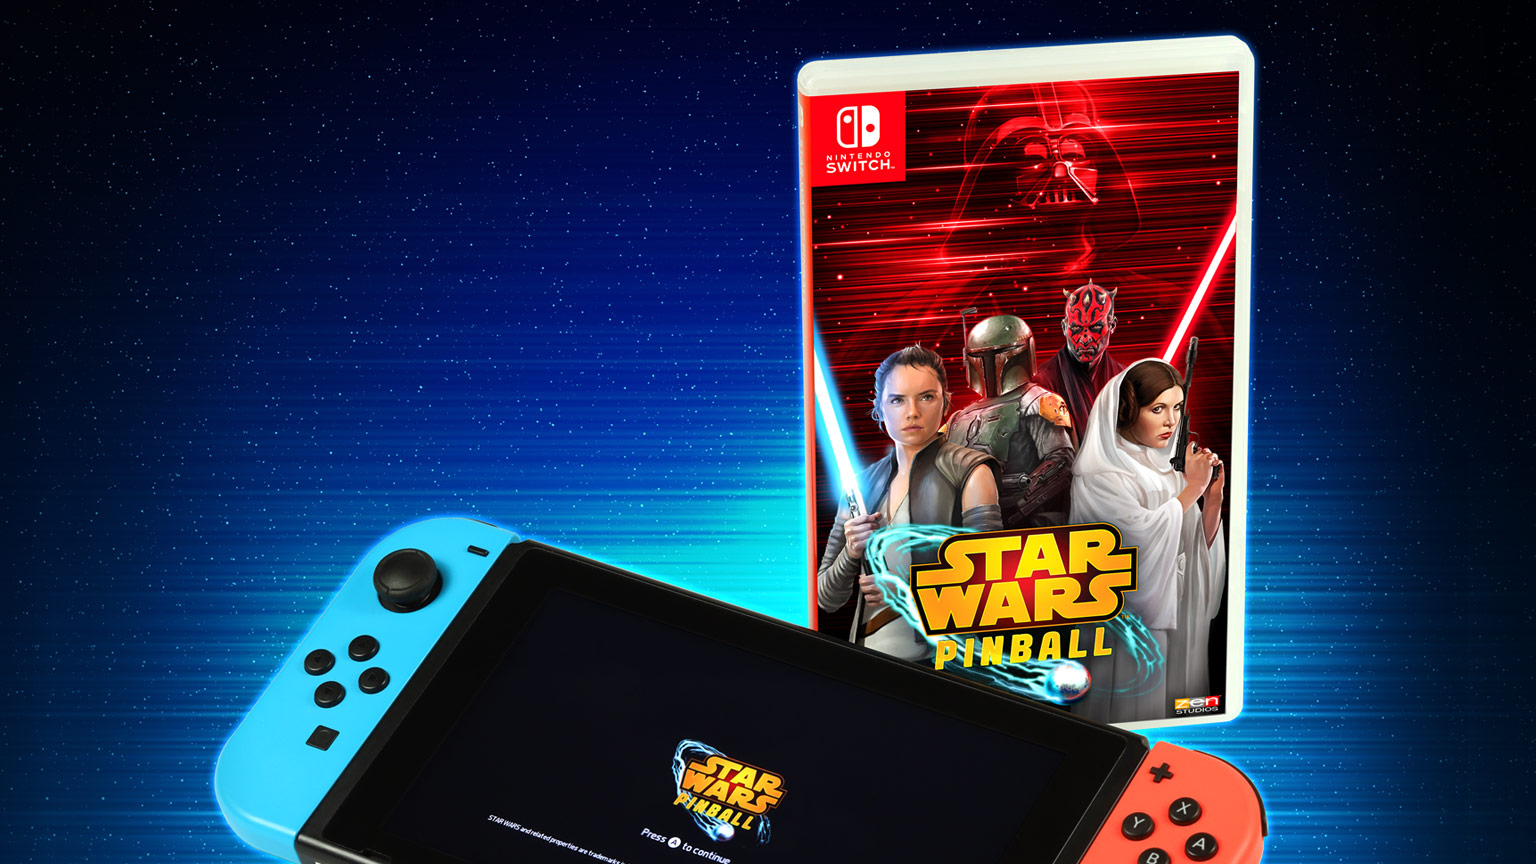 Star Wars Pinball Nintendo Switch box art